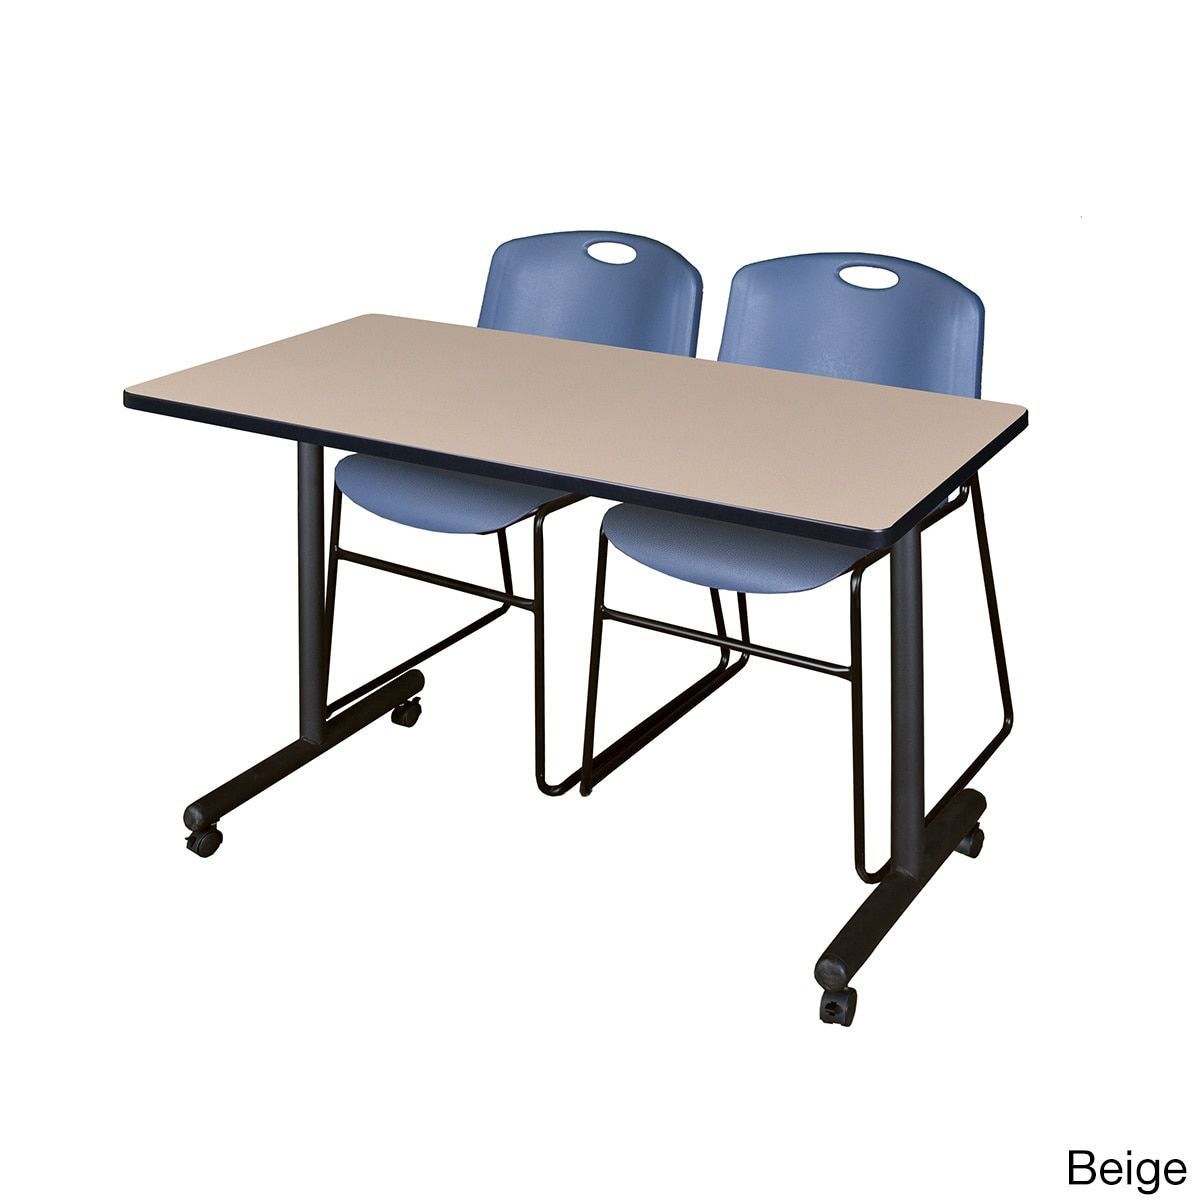 Executive office table with glass top regency seating kobe mobile training table u  zeng blue stack